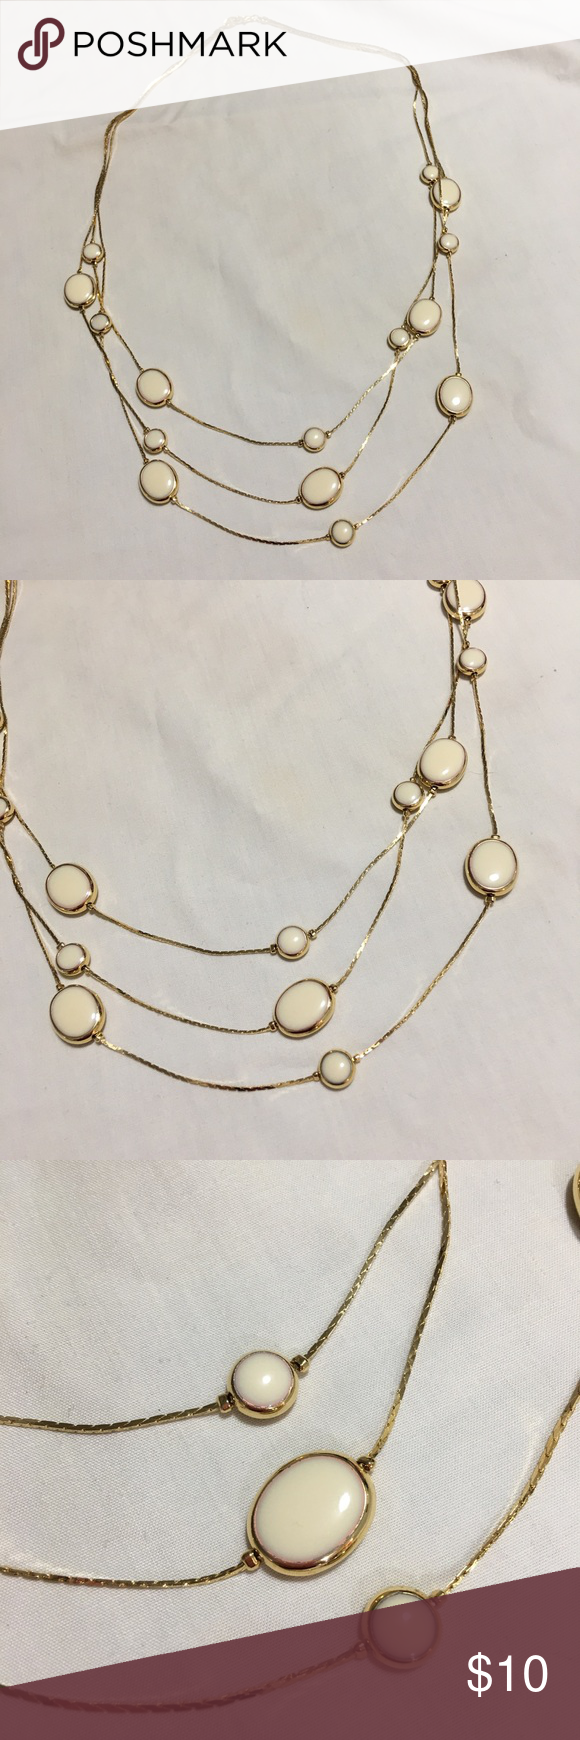 Selling this Vintage Avon Gold 3-Strand Ivory Disc Necklace on